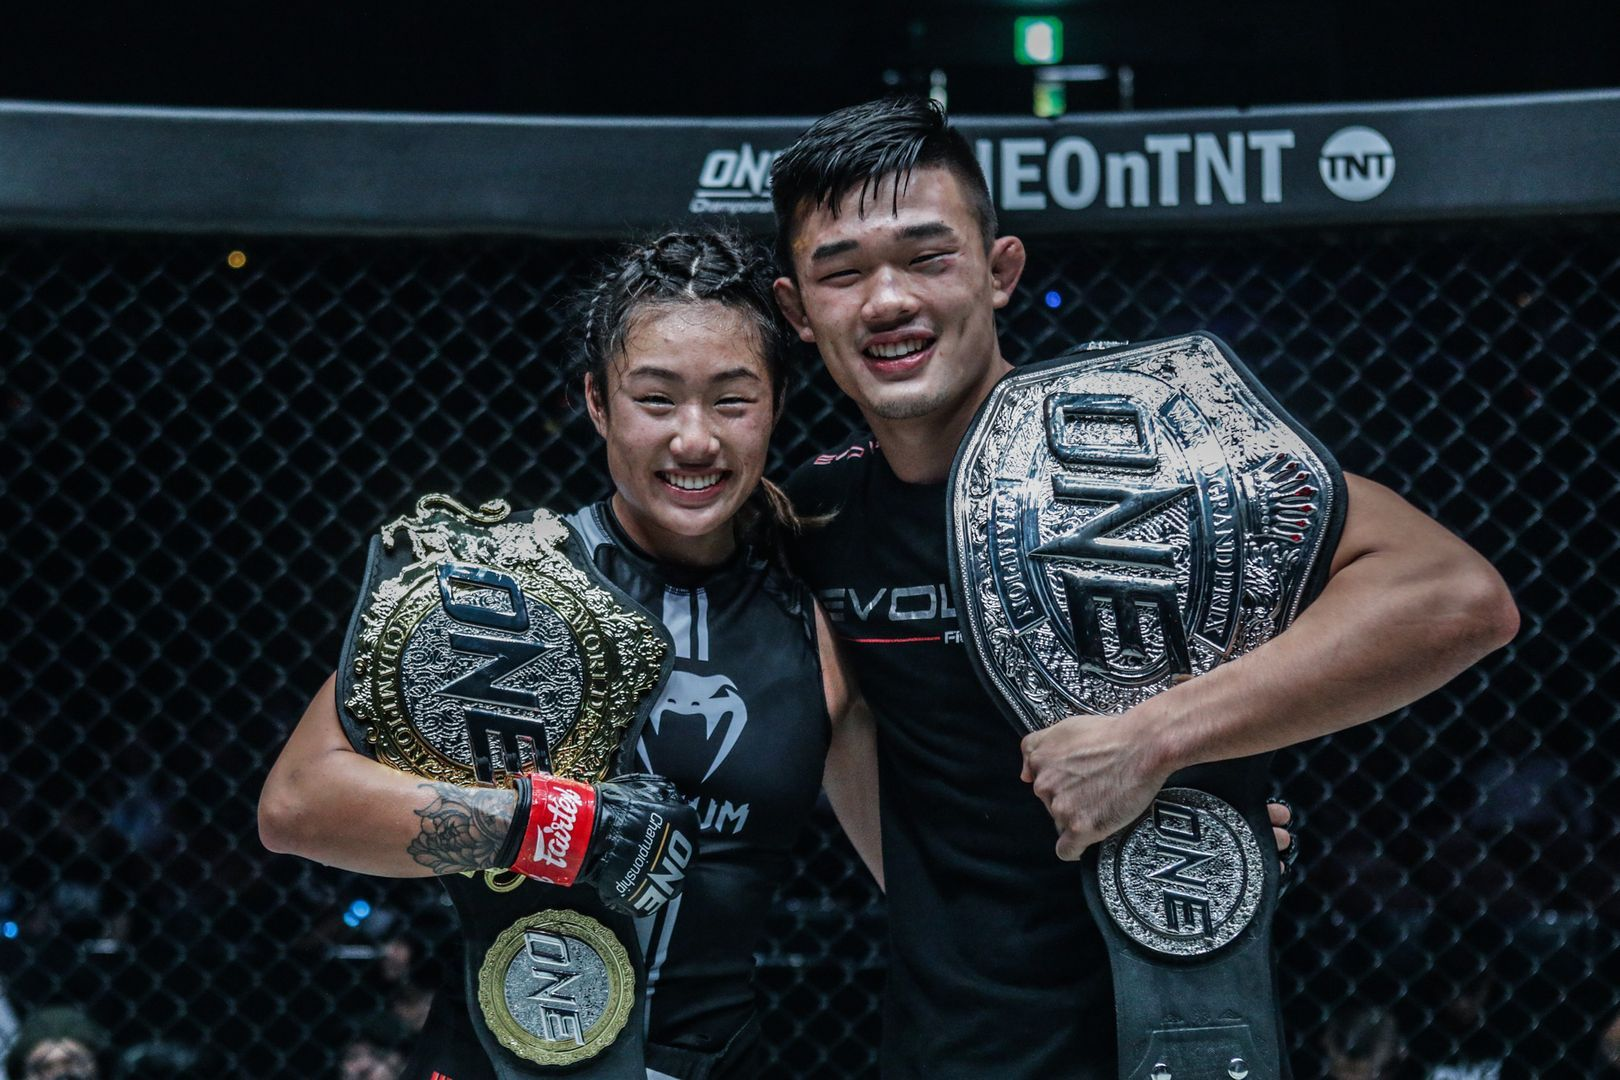 The first sibling World Champions in mixed martial arts history, Angela and Christian Lee